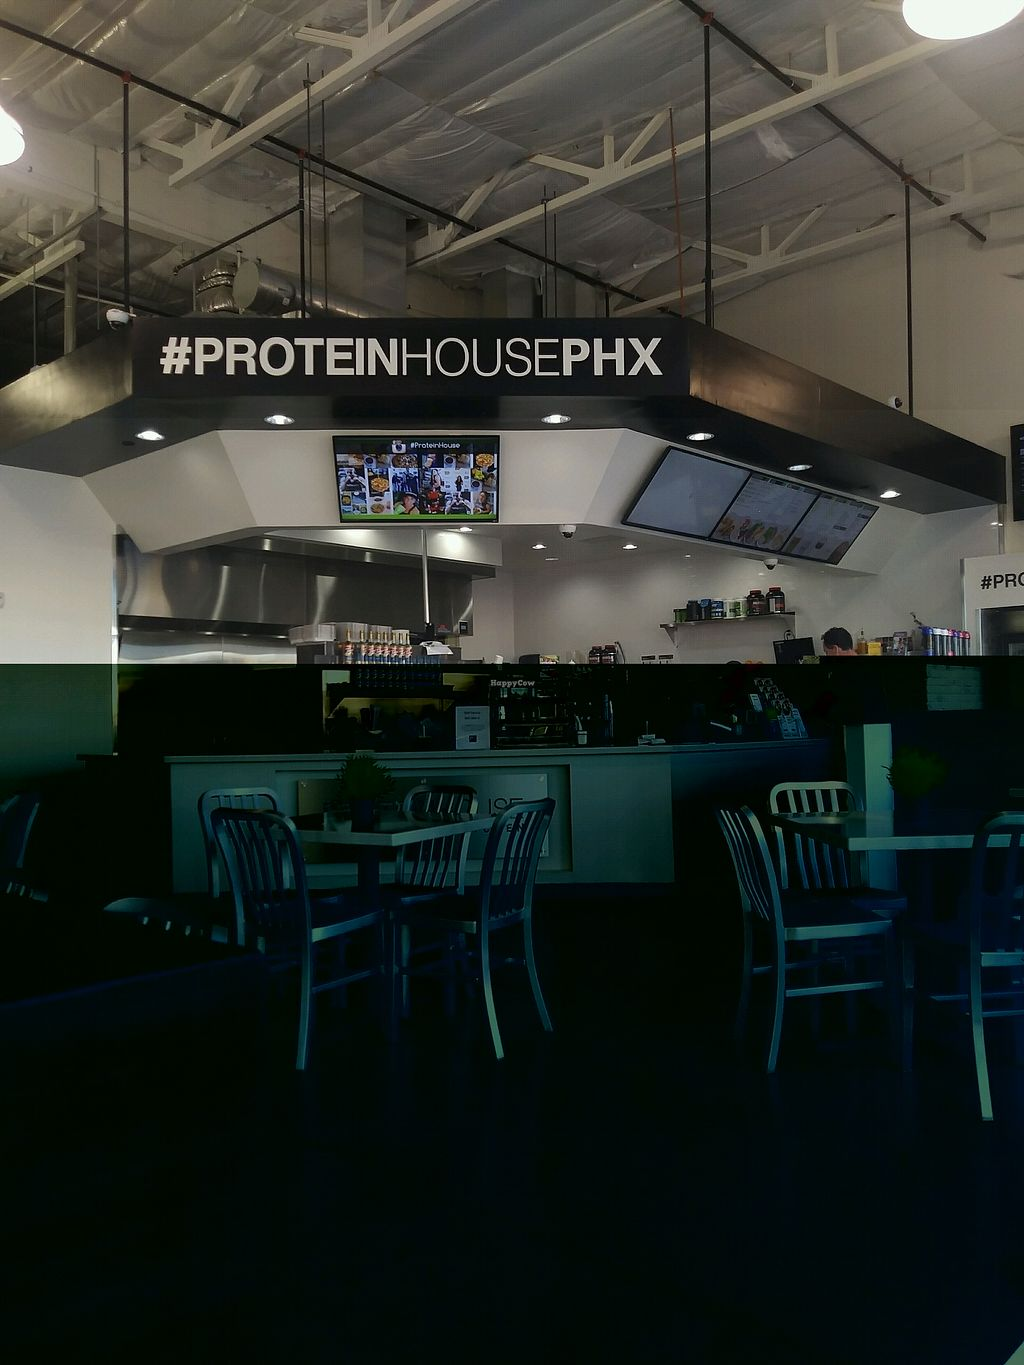 """Photo of ProteinHouse  by <a href=""""/members/profile/chanel39"""">chanel39</a> <br/>Great atmosphere <br/> January 5, 2018  - <a href='/contact/abuse/image/89061/343359'>Report</a>"""